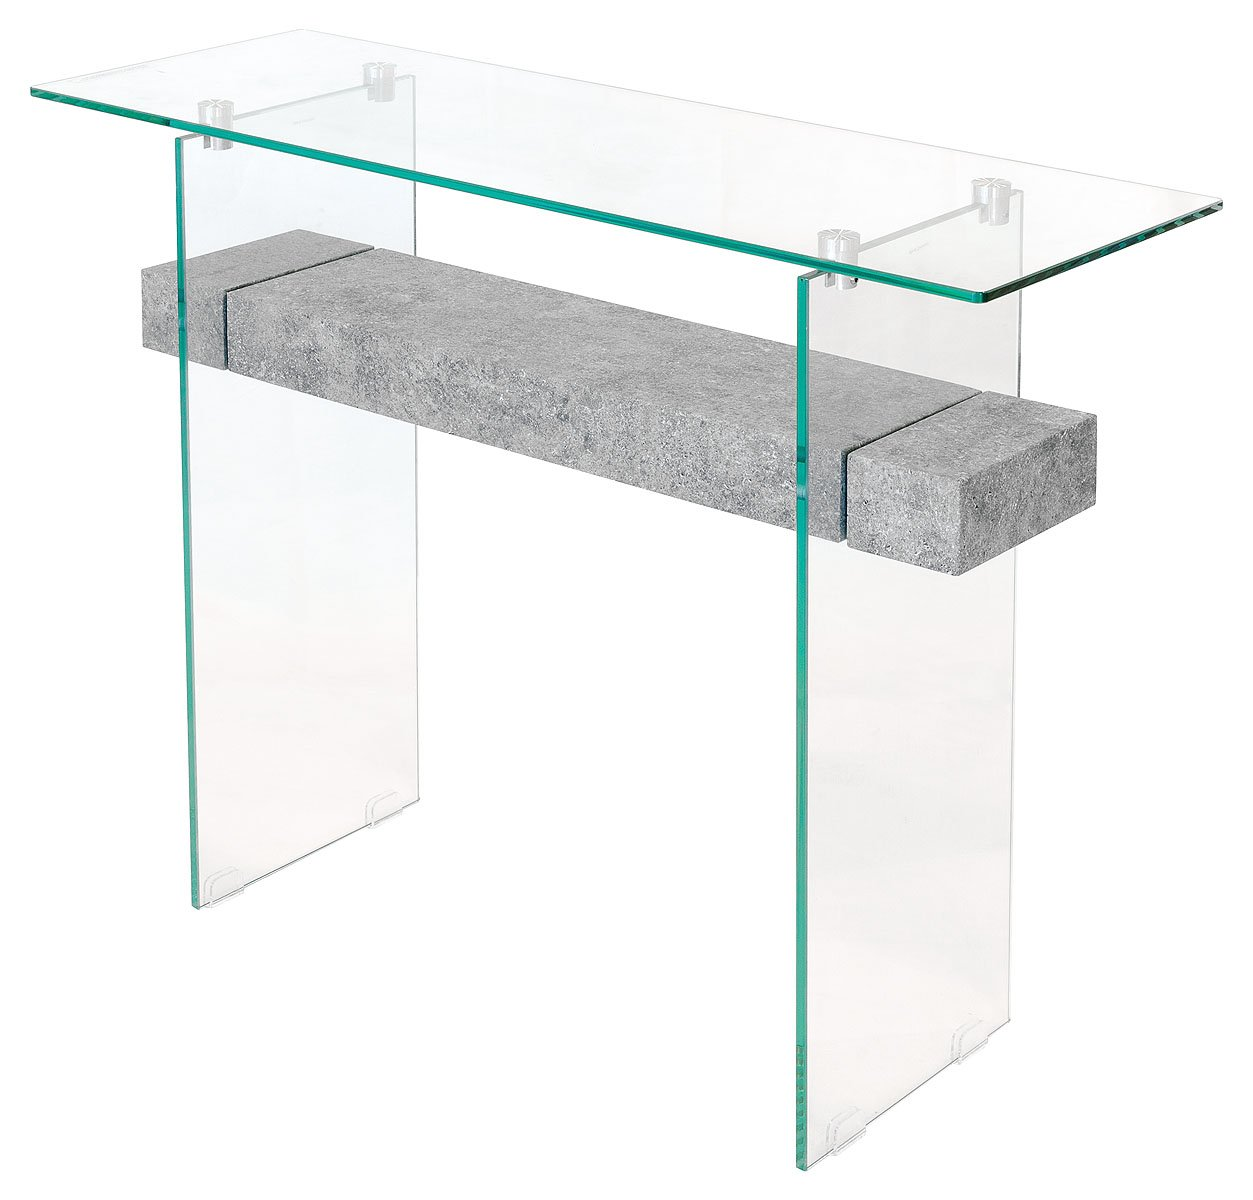 Febland Stone Effect Glass Console Table, Grey, 100x35x81.5 Cm:  Amazon.co.uk: Kitchen U0026 Home